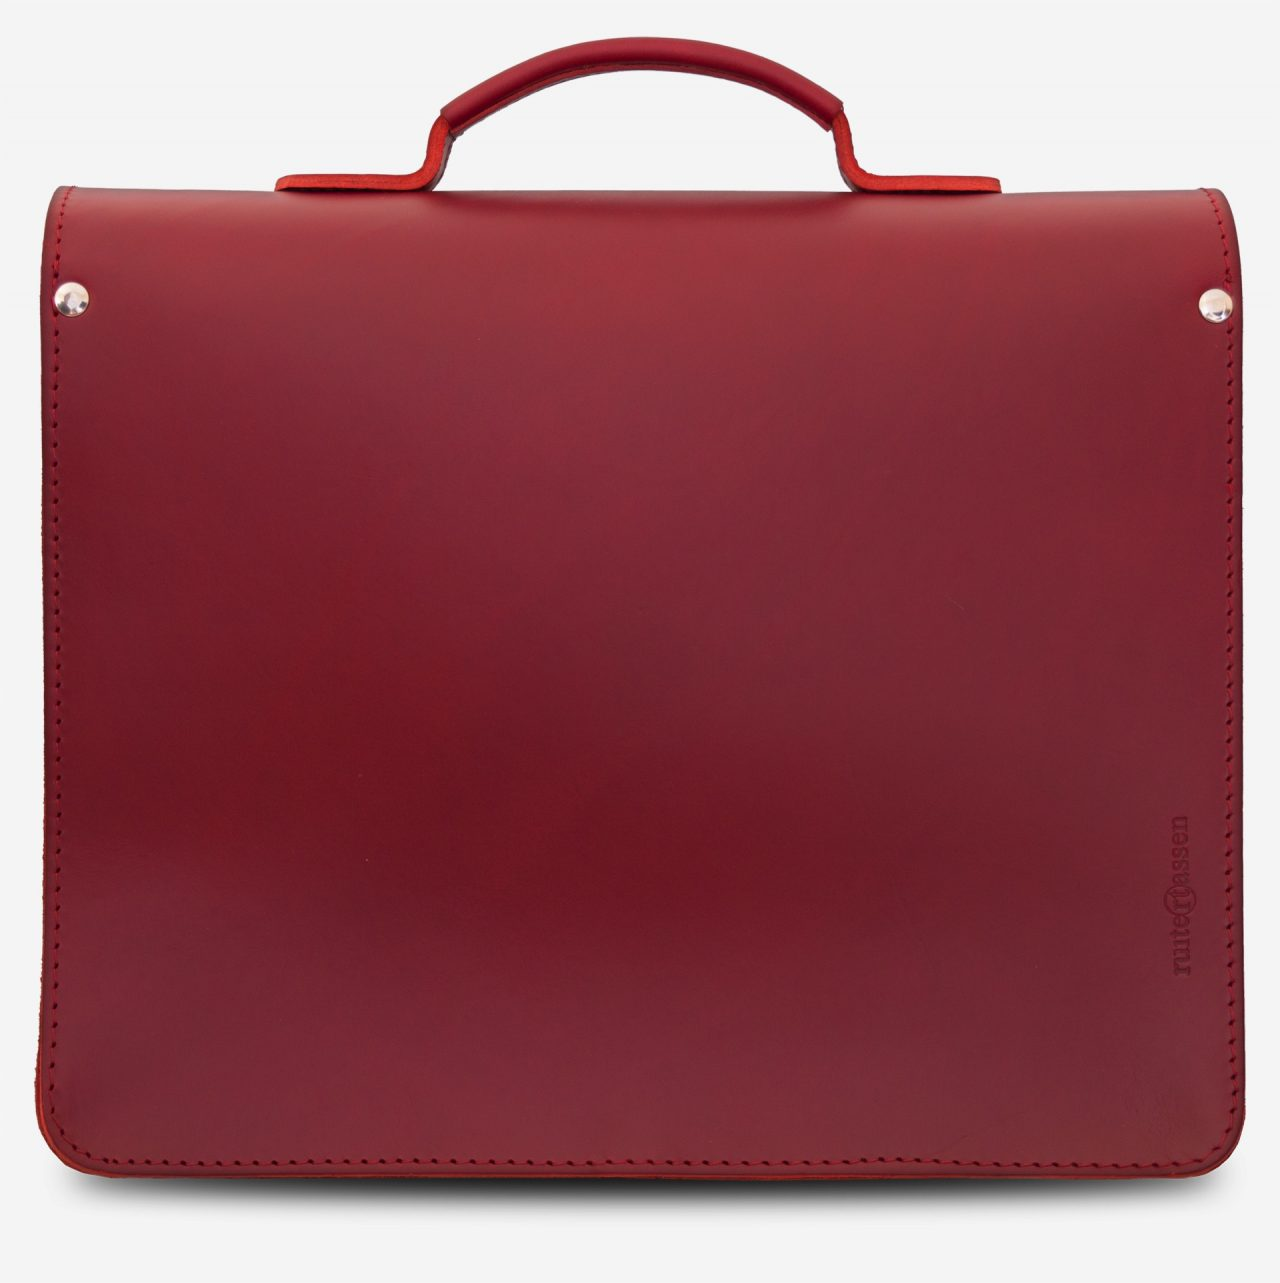 Back view of red leather briefcase with single compartment and large front pocket for women - 152141.